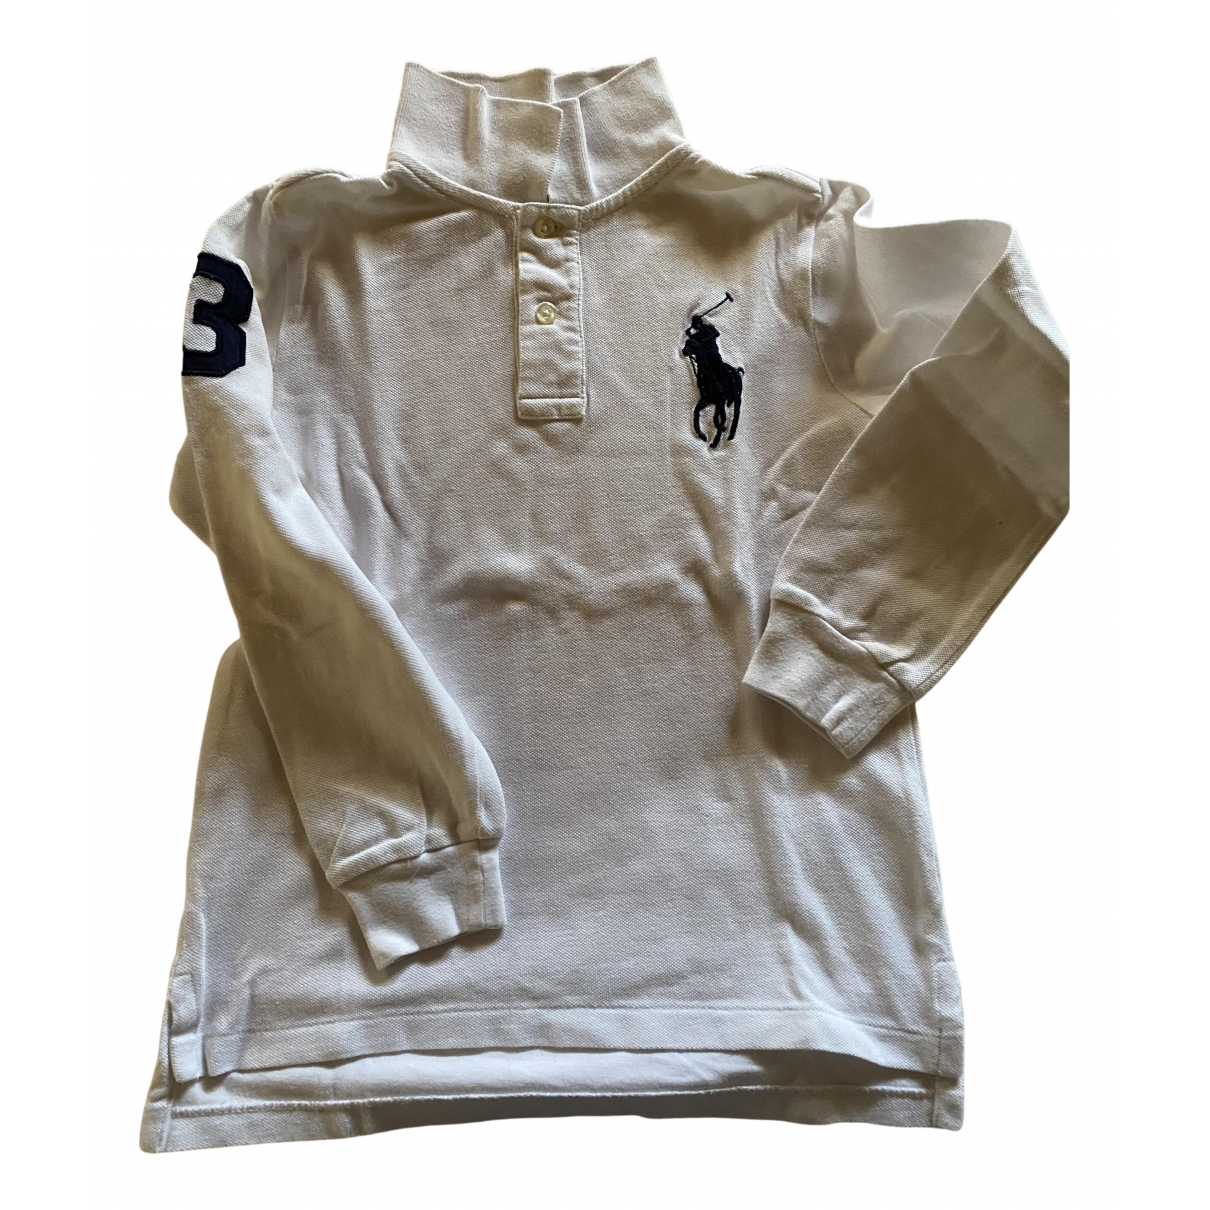 Polo Ralph Lauren N White Cotton  top for Kids 6 years - up to 114cm FR